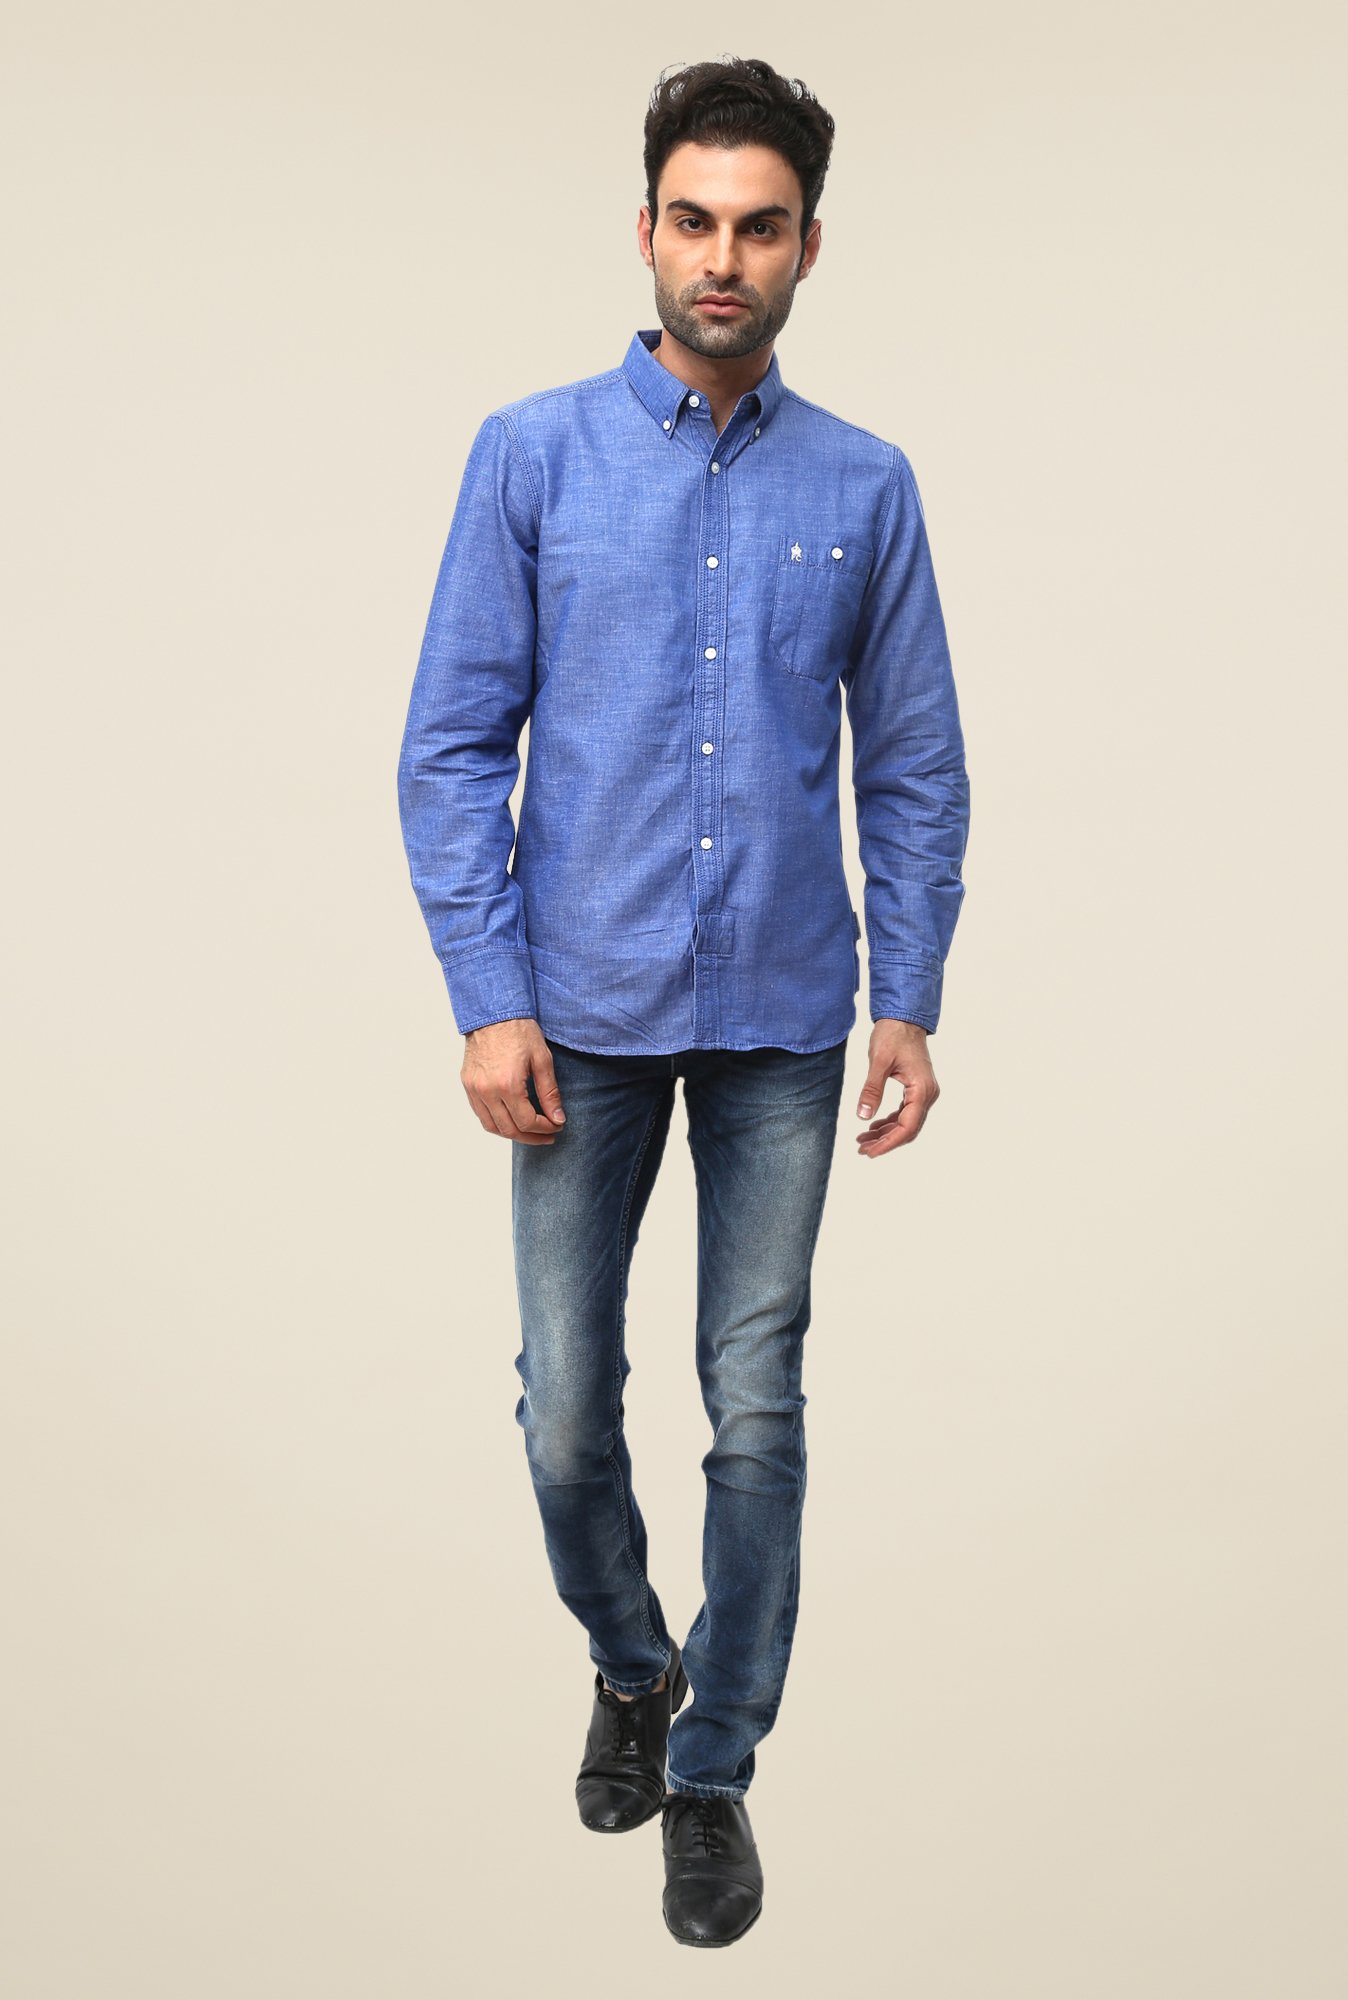 FCUK Blue Full Sleeve Solid Shirt